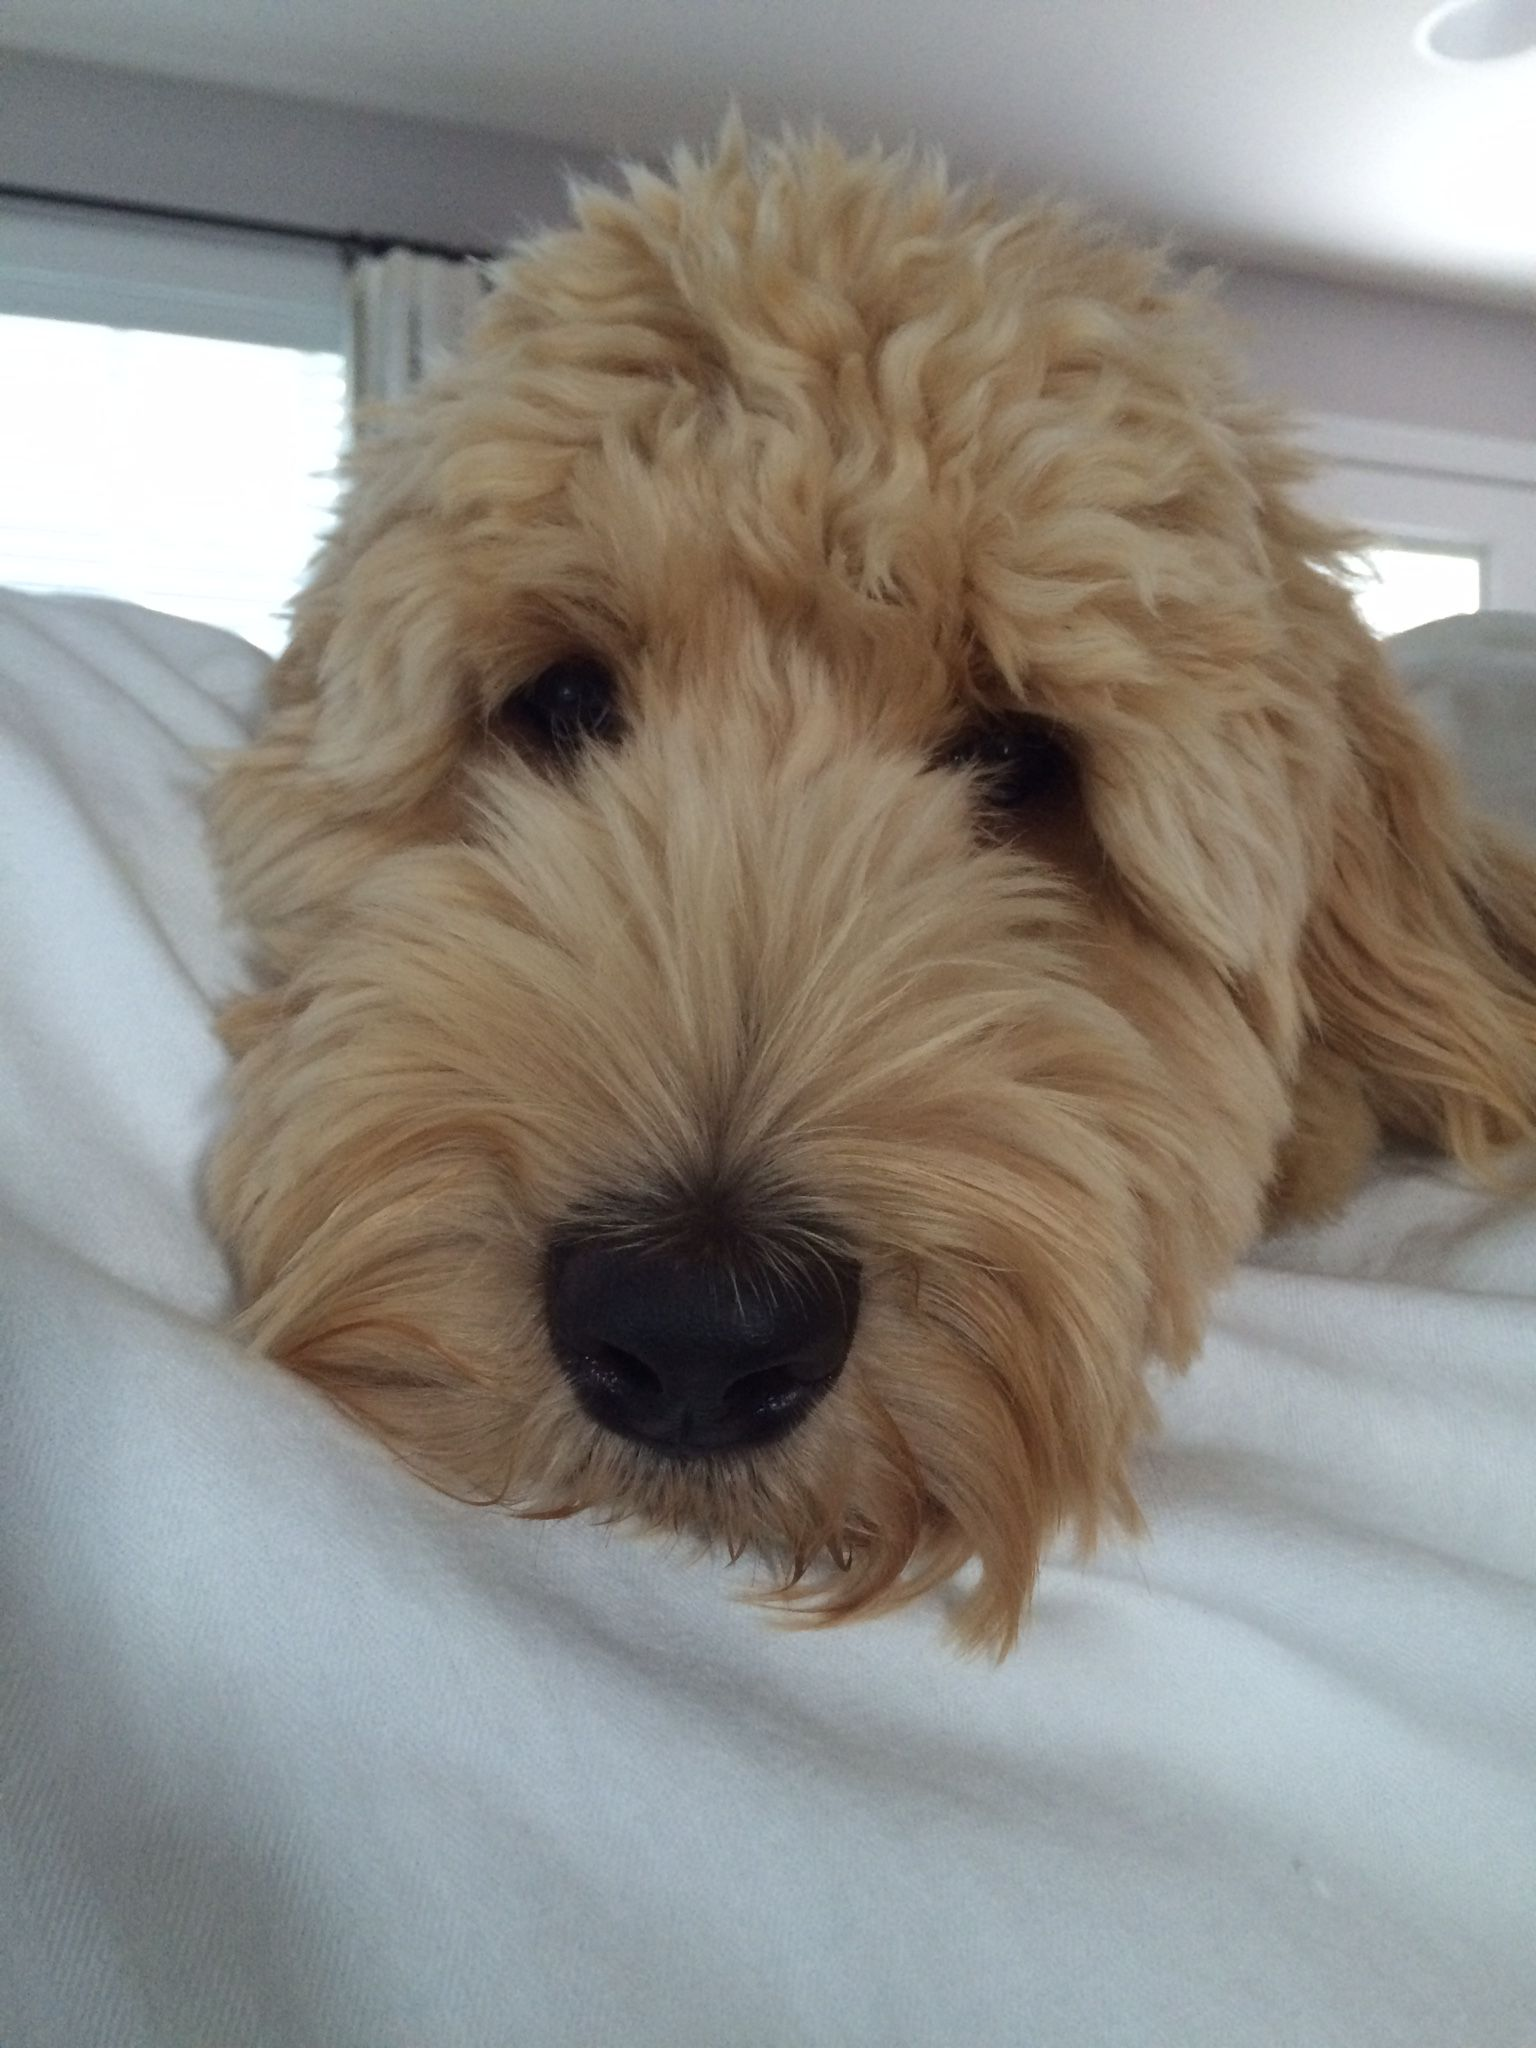 Doodle face fluffy animals goldendoodle grooming cute